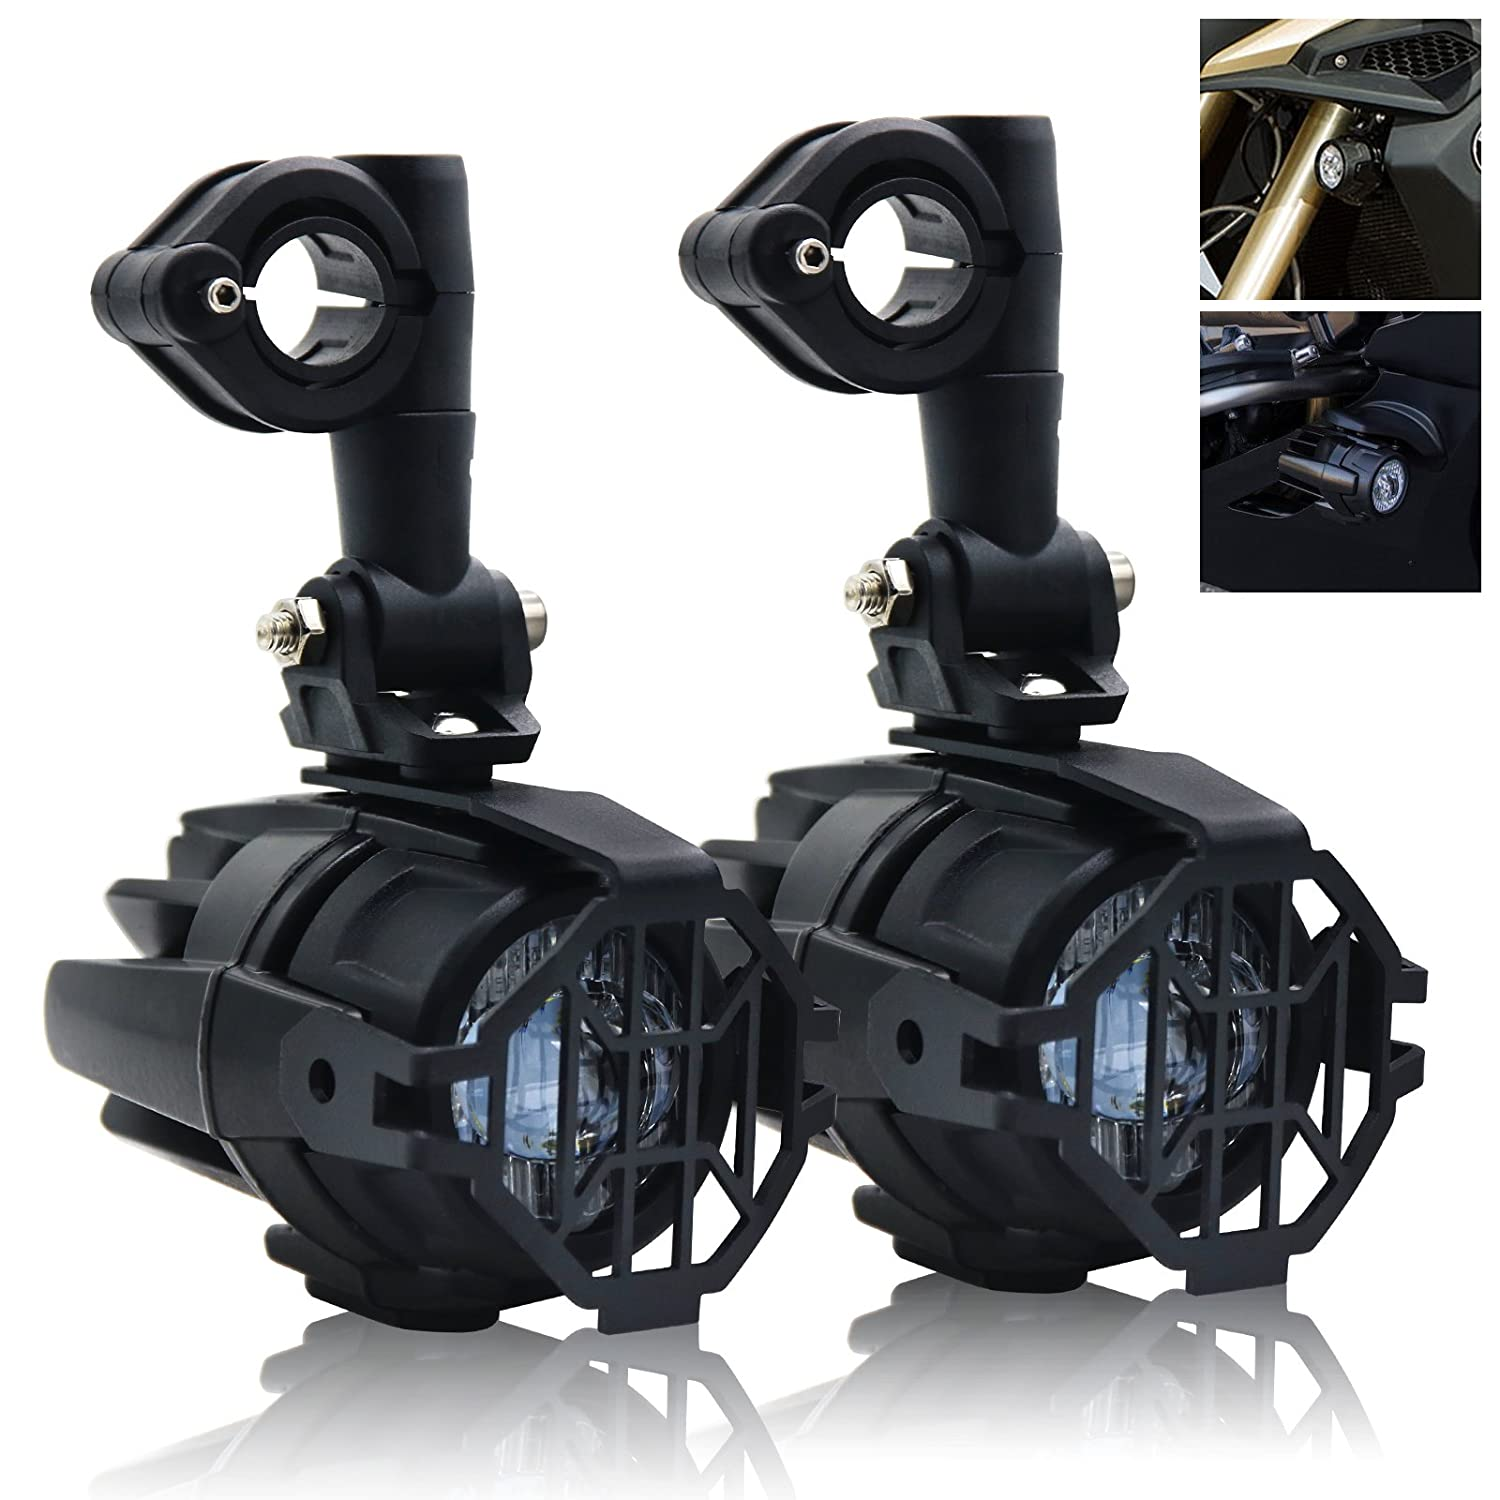 1 Set BSK Motorcycle LED Auxiliary Light Fog Spot Driving Lamp Kit with Protect Guard Wiring Harness for Universal Motorbike